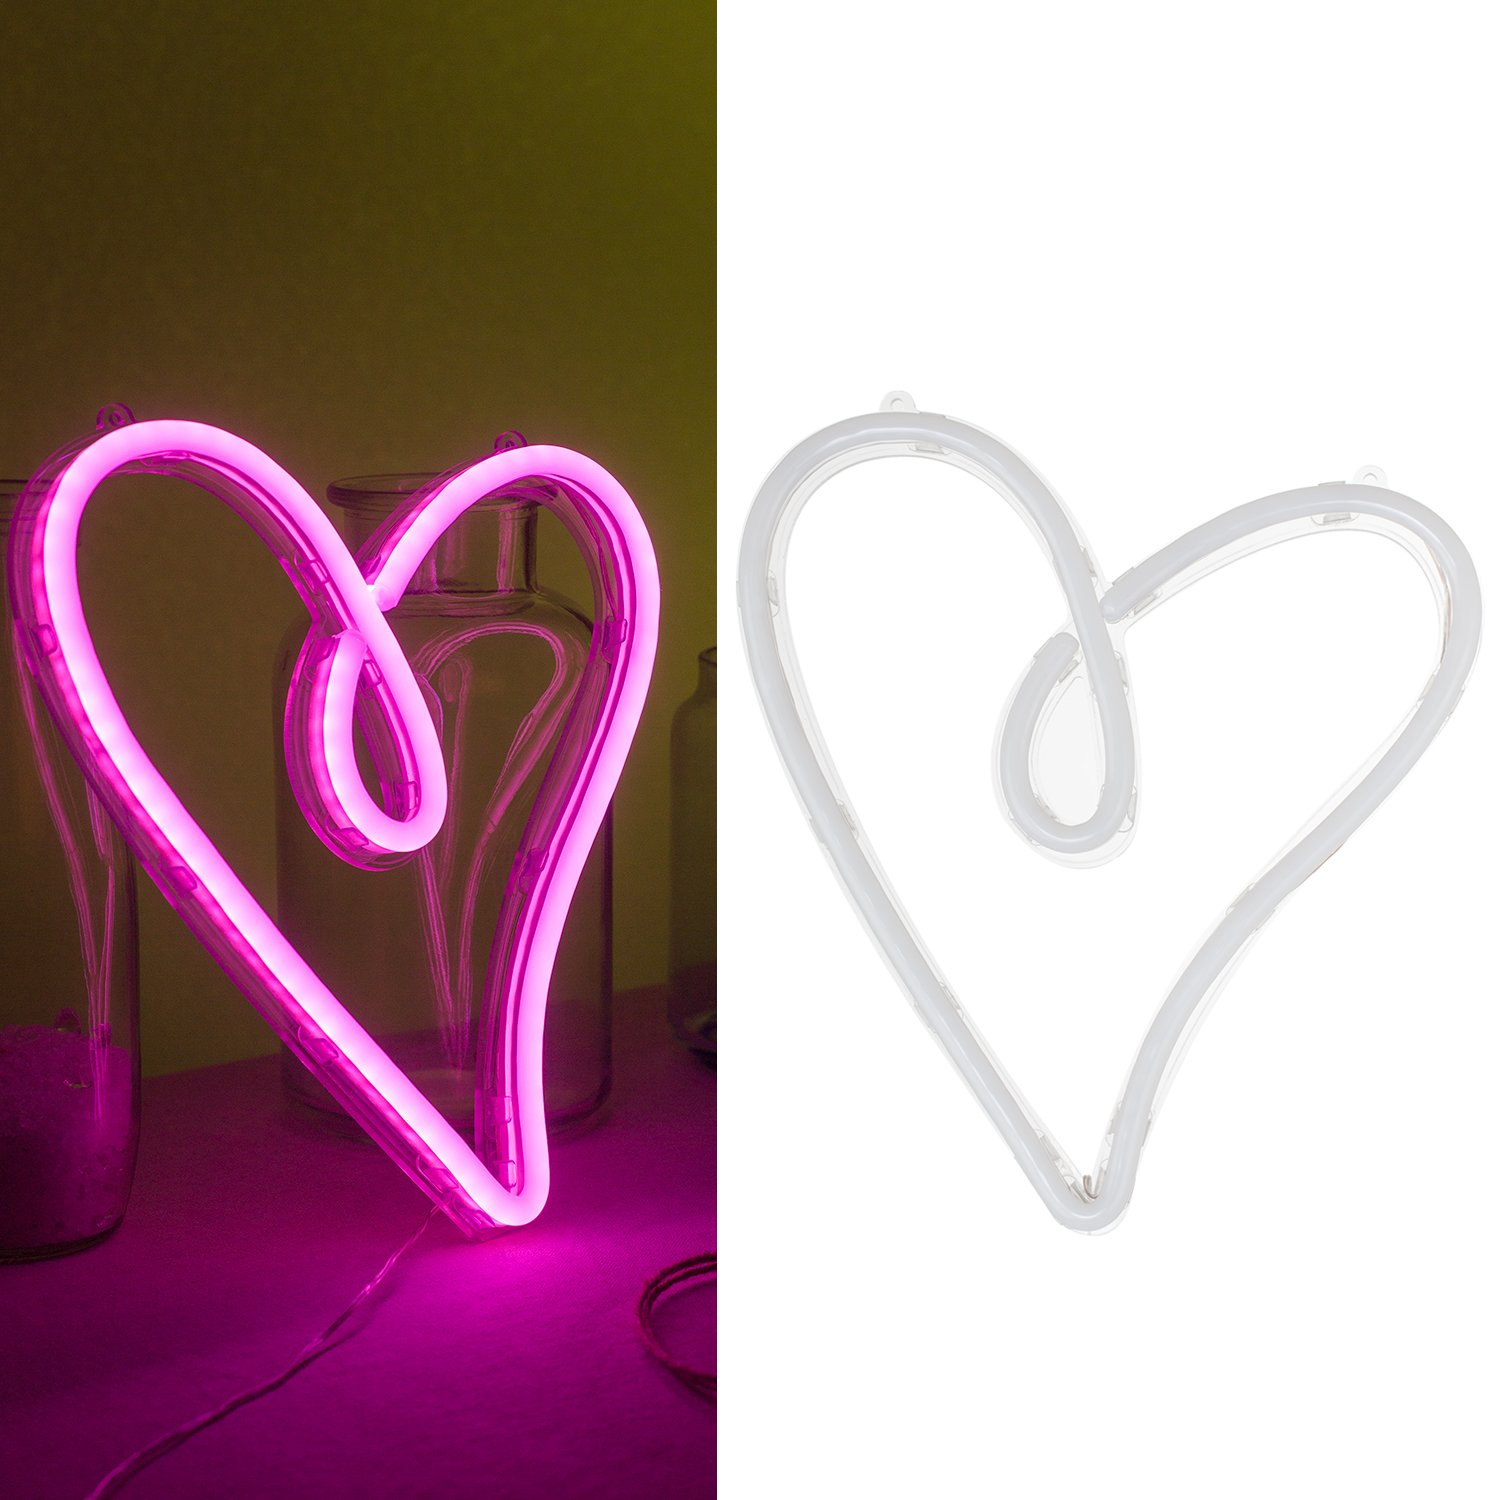 Neon Signs | Amazon.com | Lighting & Ceiling Fans - Novelty Lighting